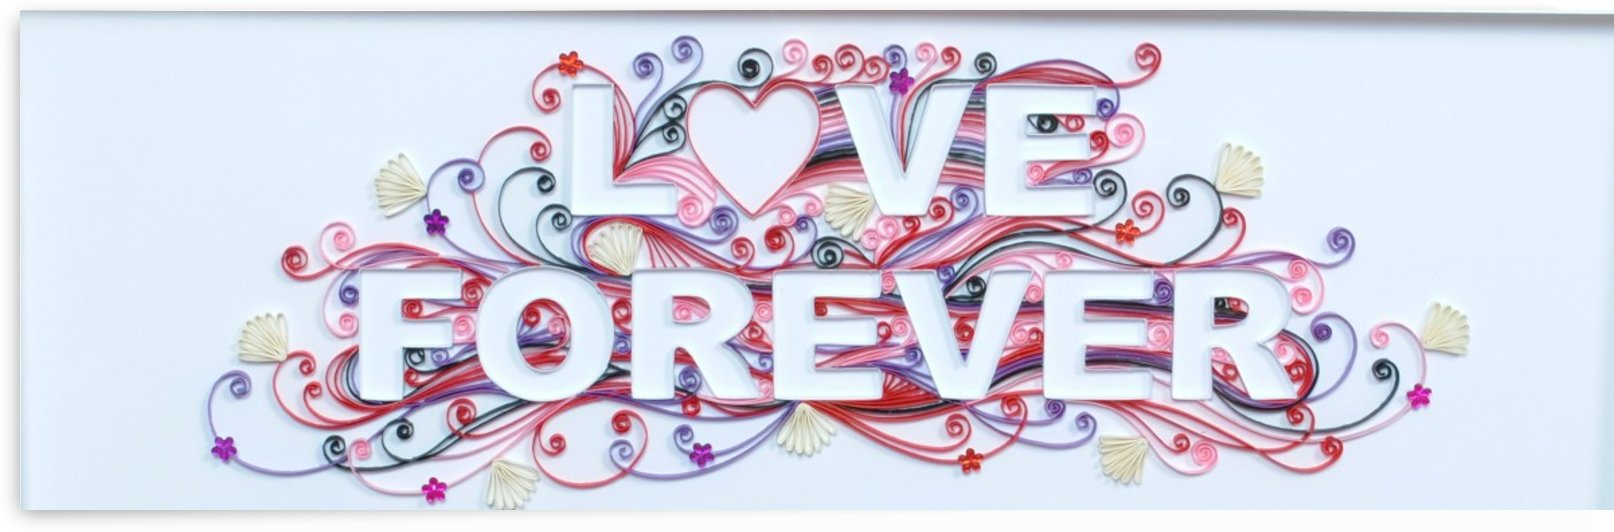 Love Forever by Erald